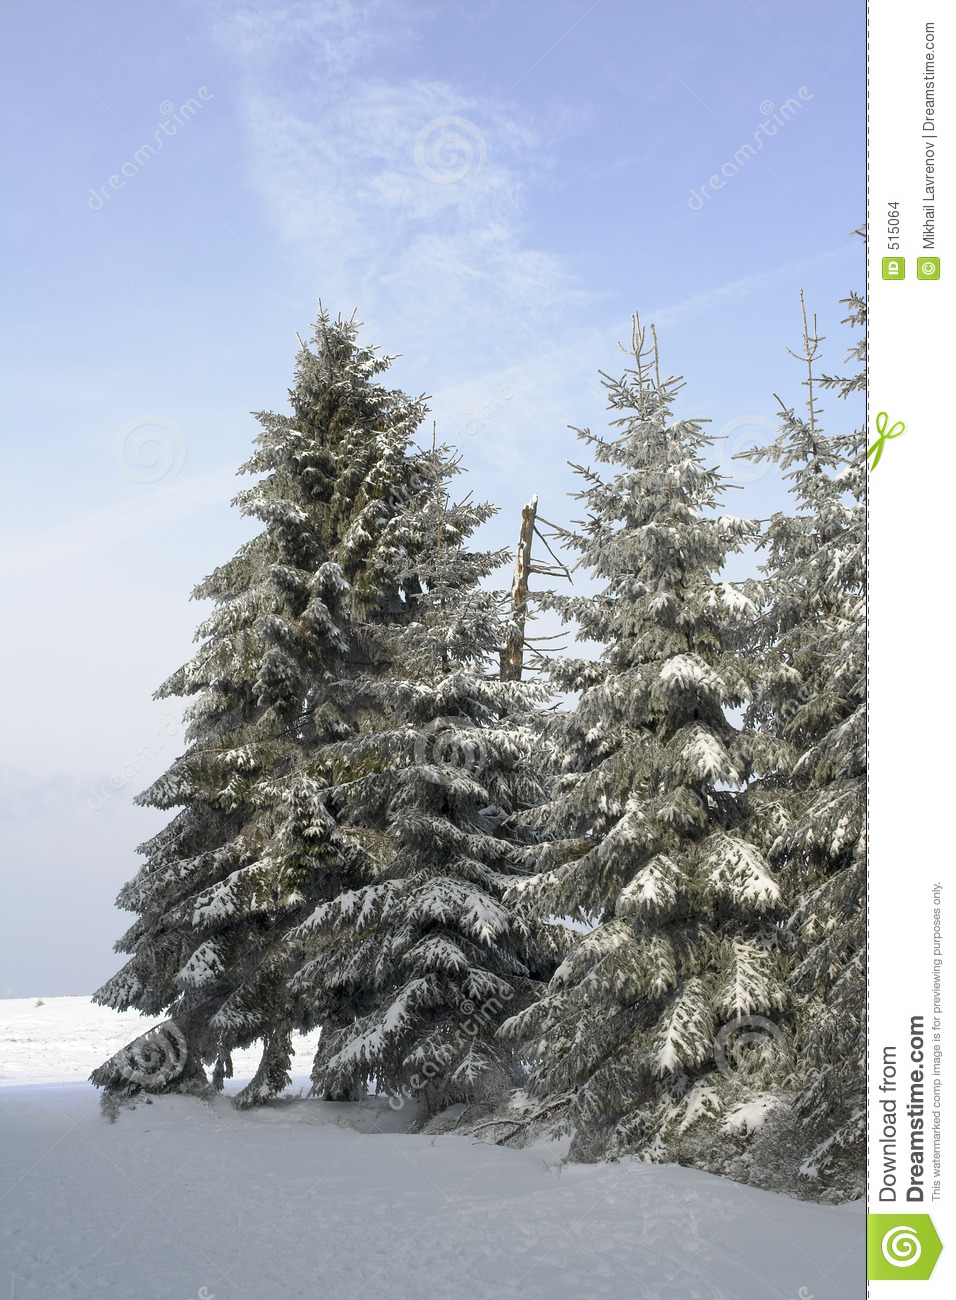 snowy fir trees forest - photo #36